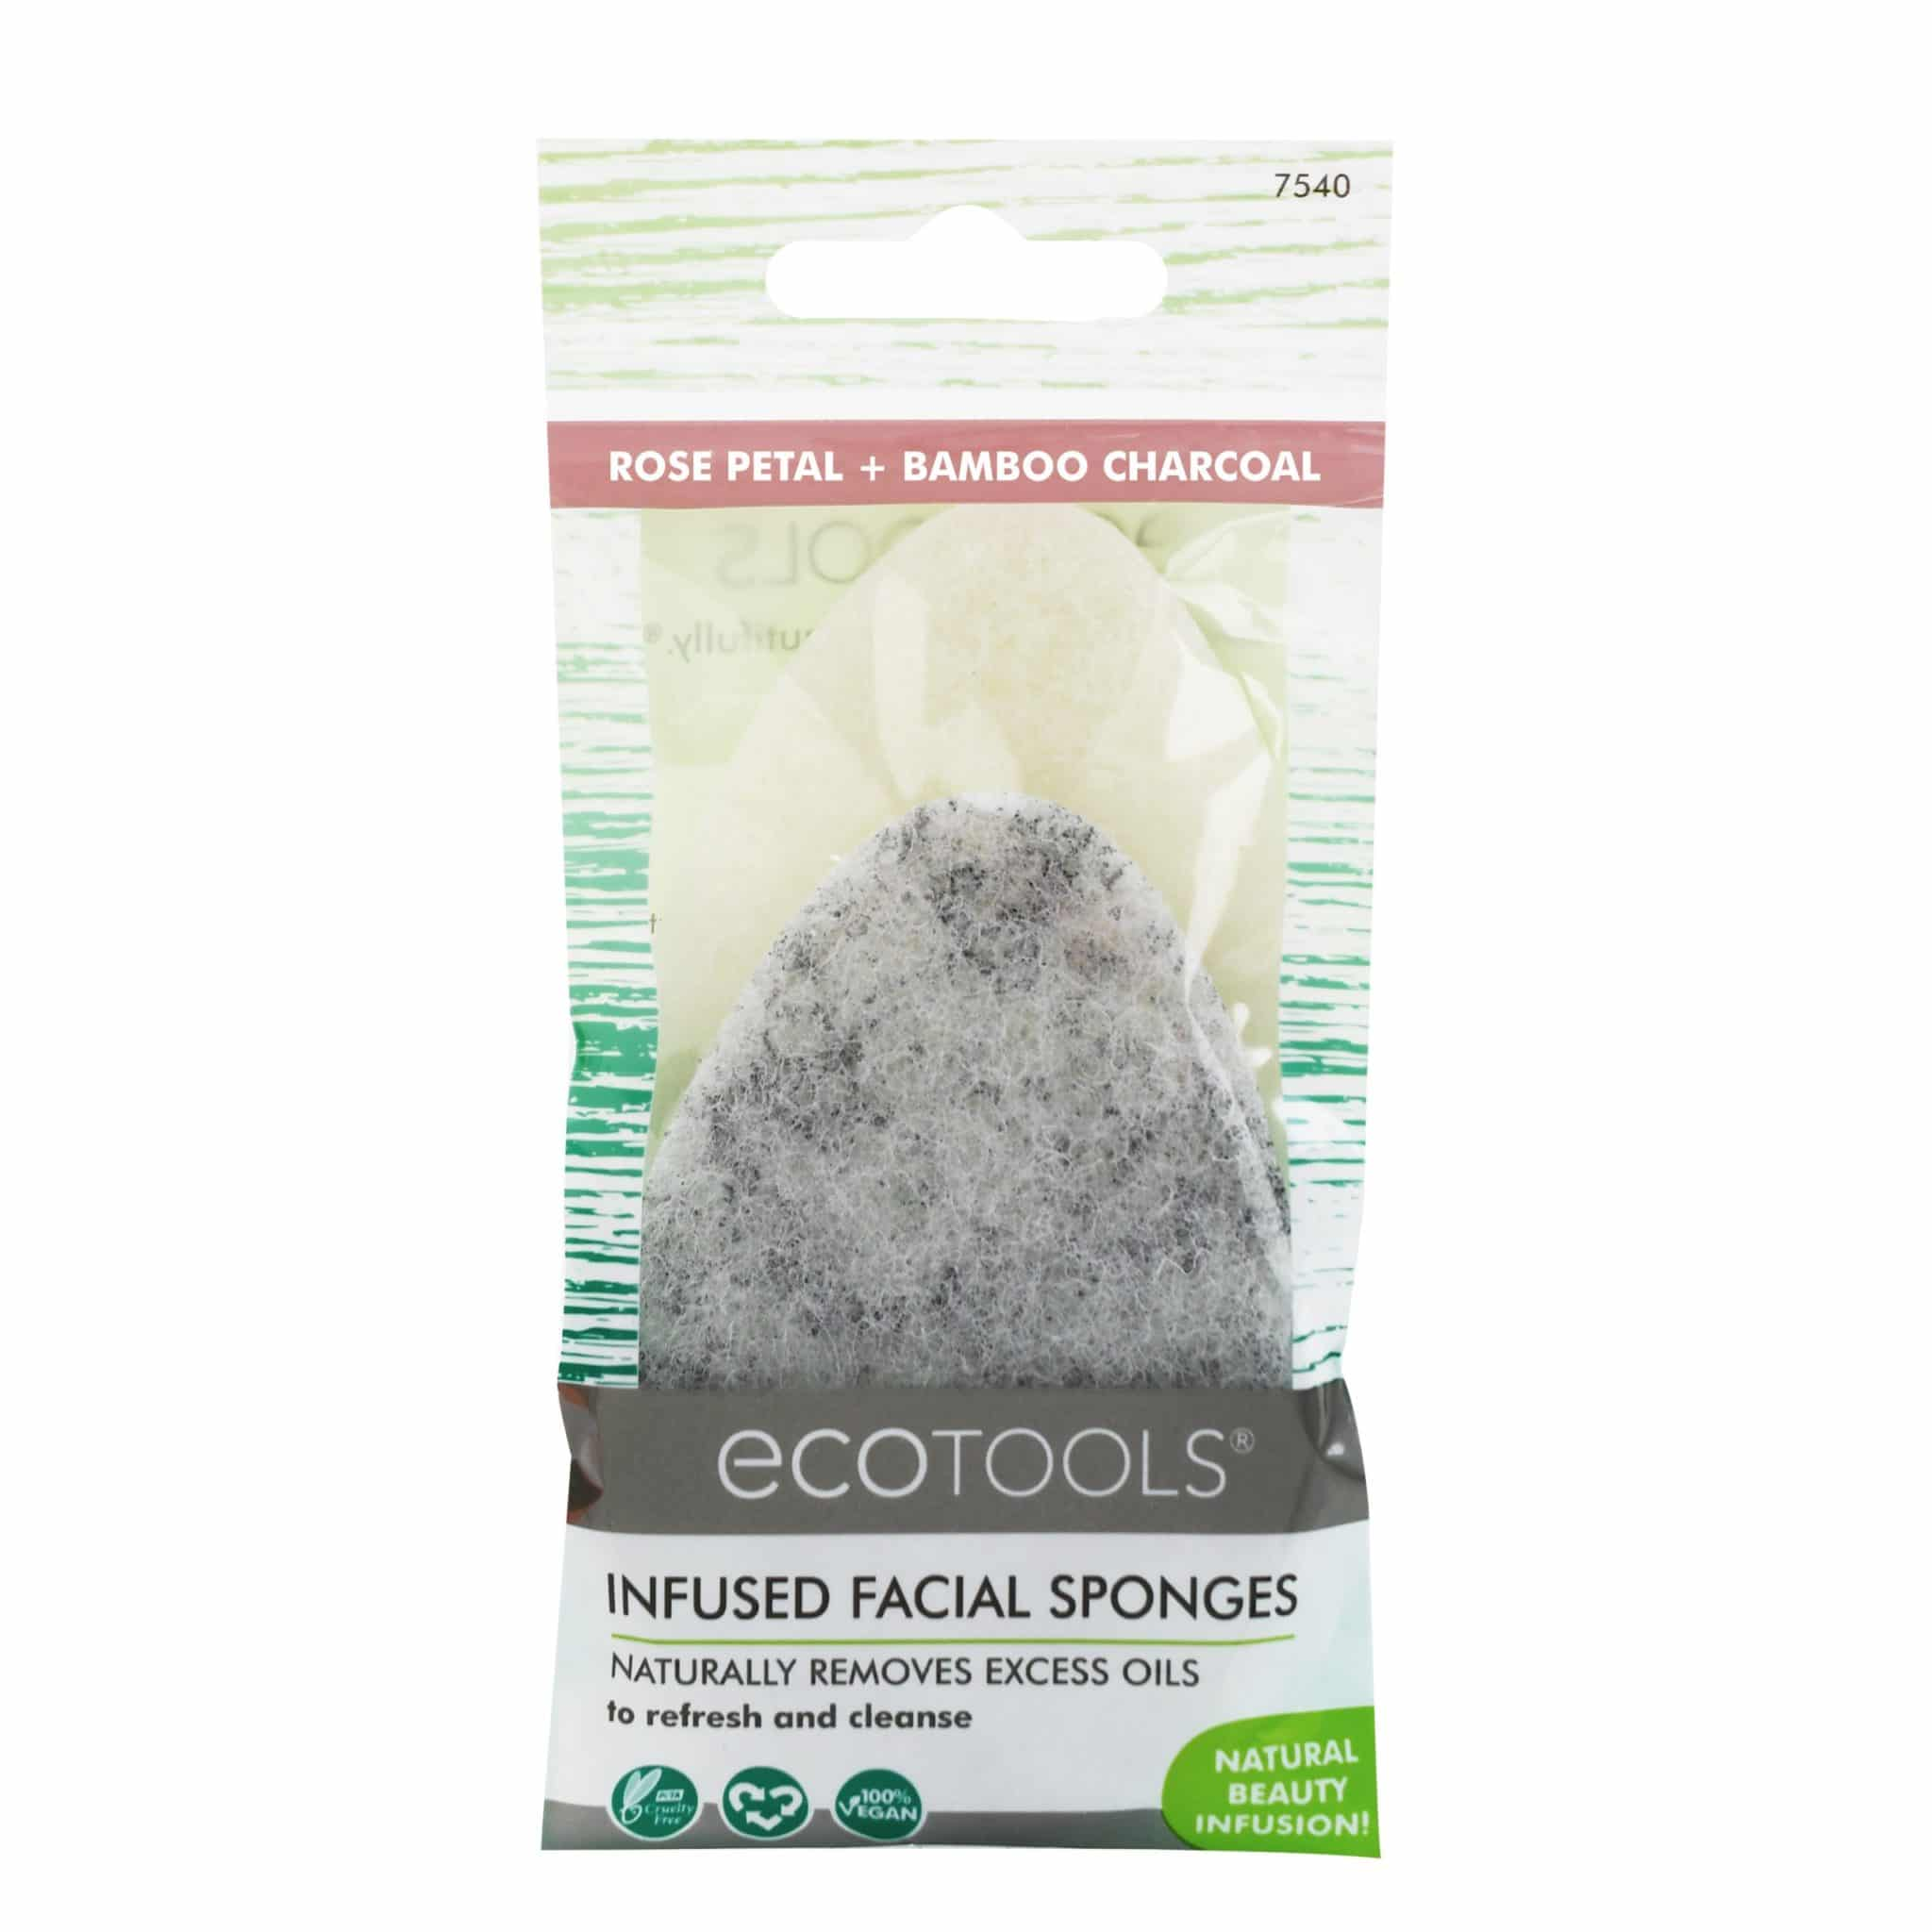 The Infused Facial Sponges Purify And Gently Exfoliate For Healthy